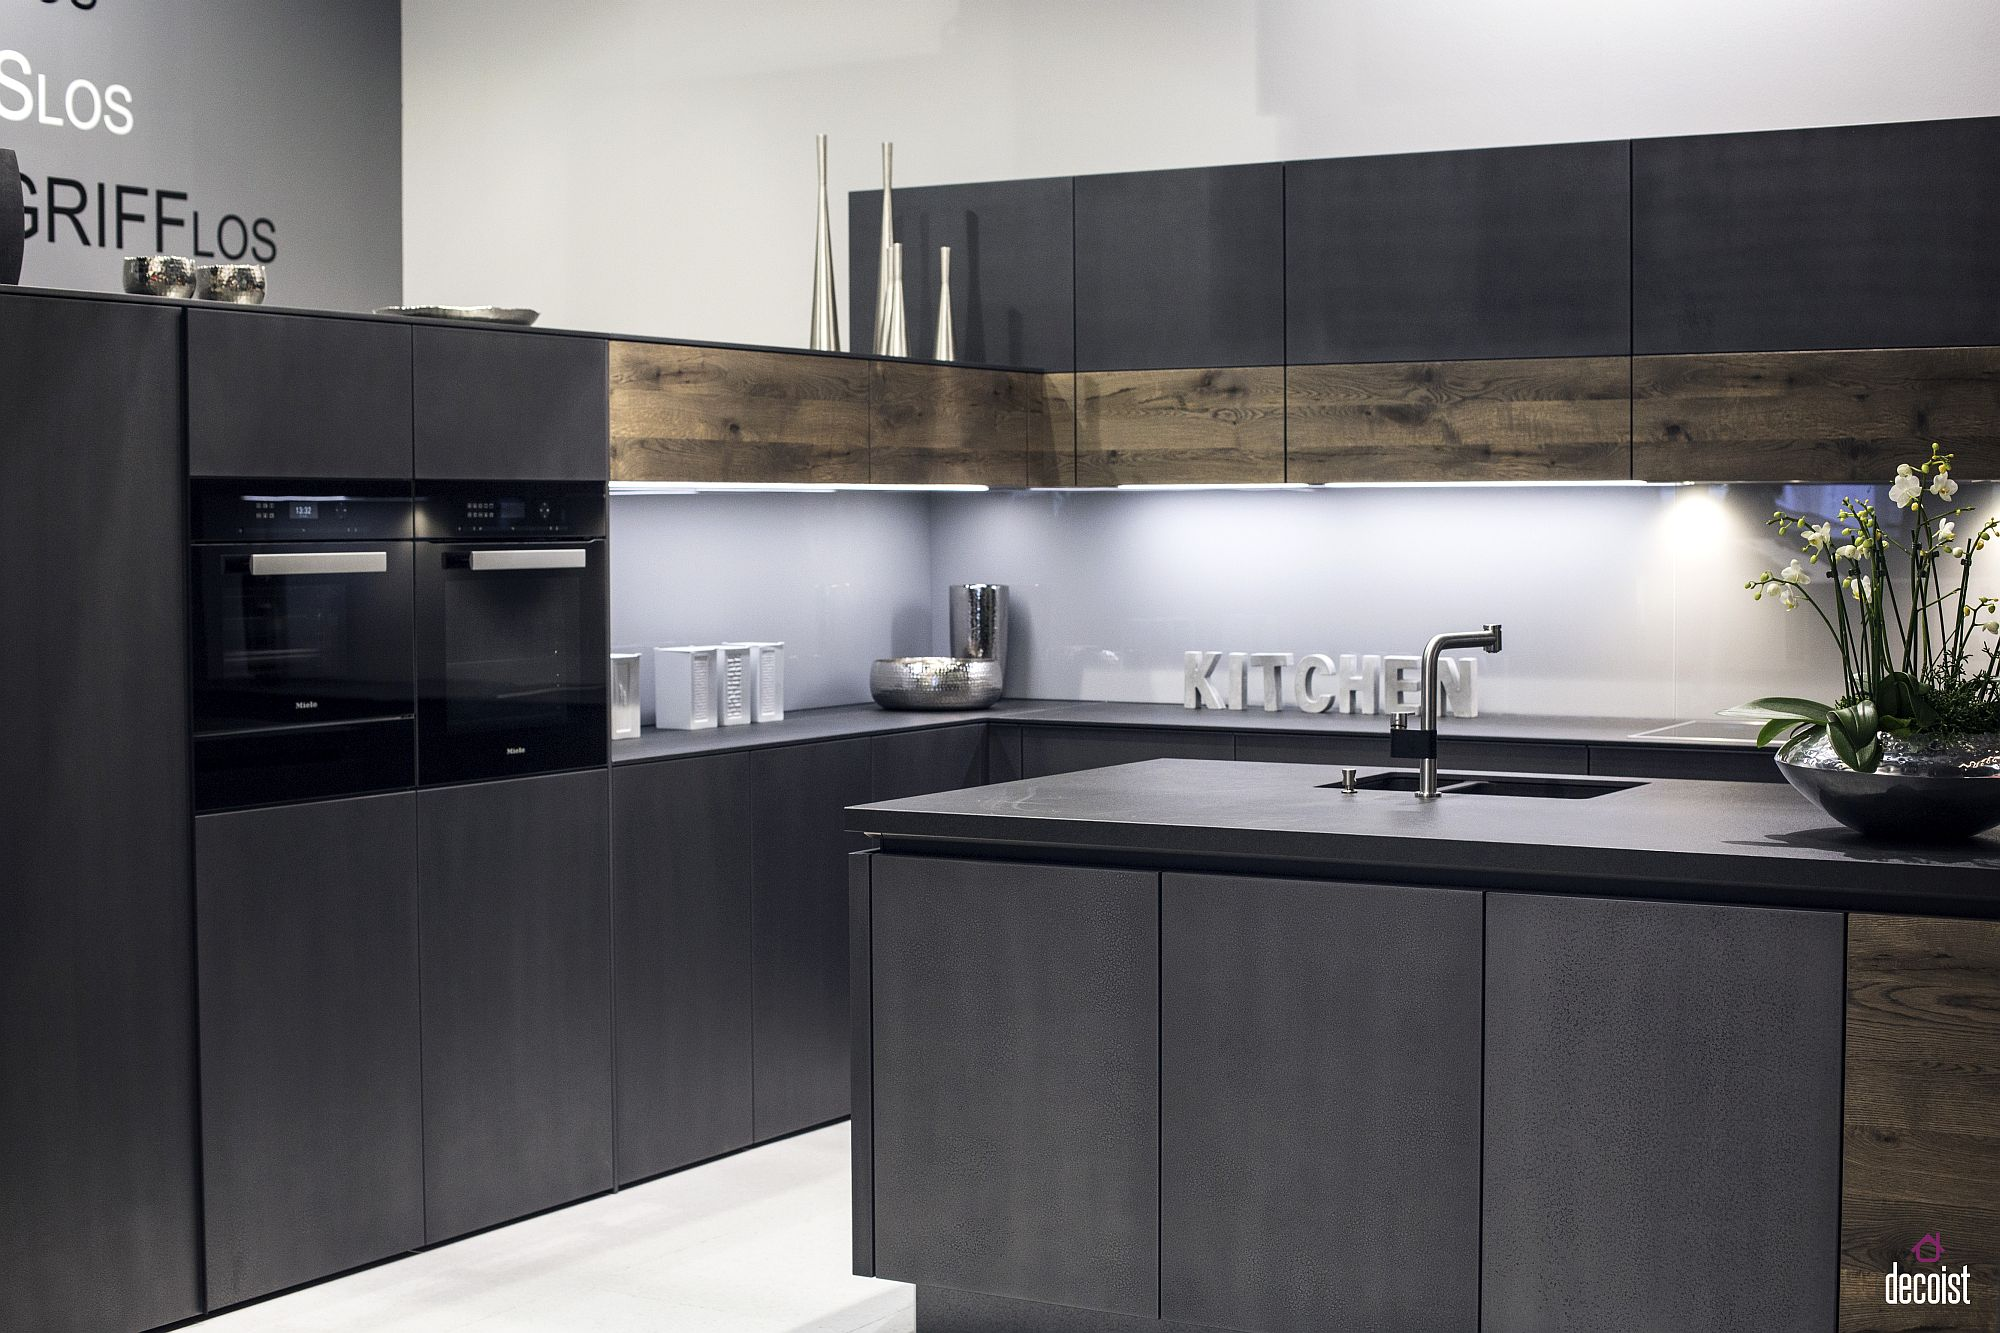 Exquisite-gray-cabinets-and-island-give-this-kitchen-from-Rempp-a-sophisticated-appeal